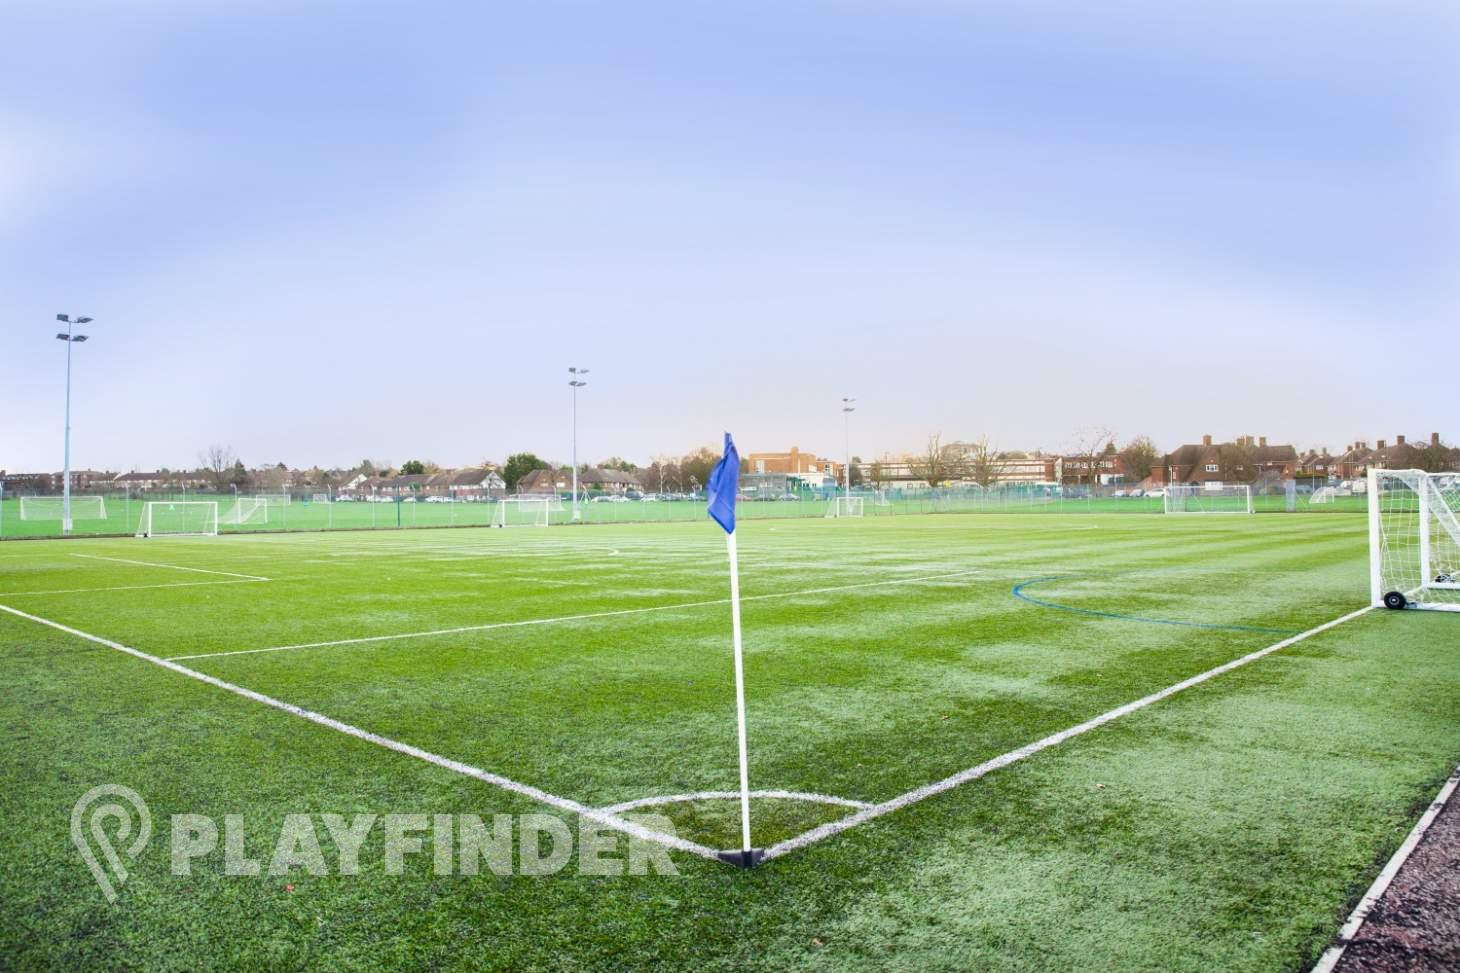 Coldharbour Leisure Centre 8 a side | 3G Astroturf football pitch